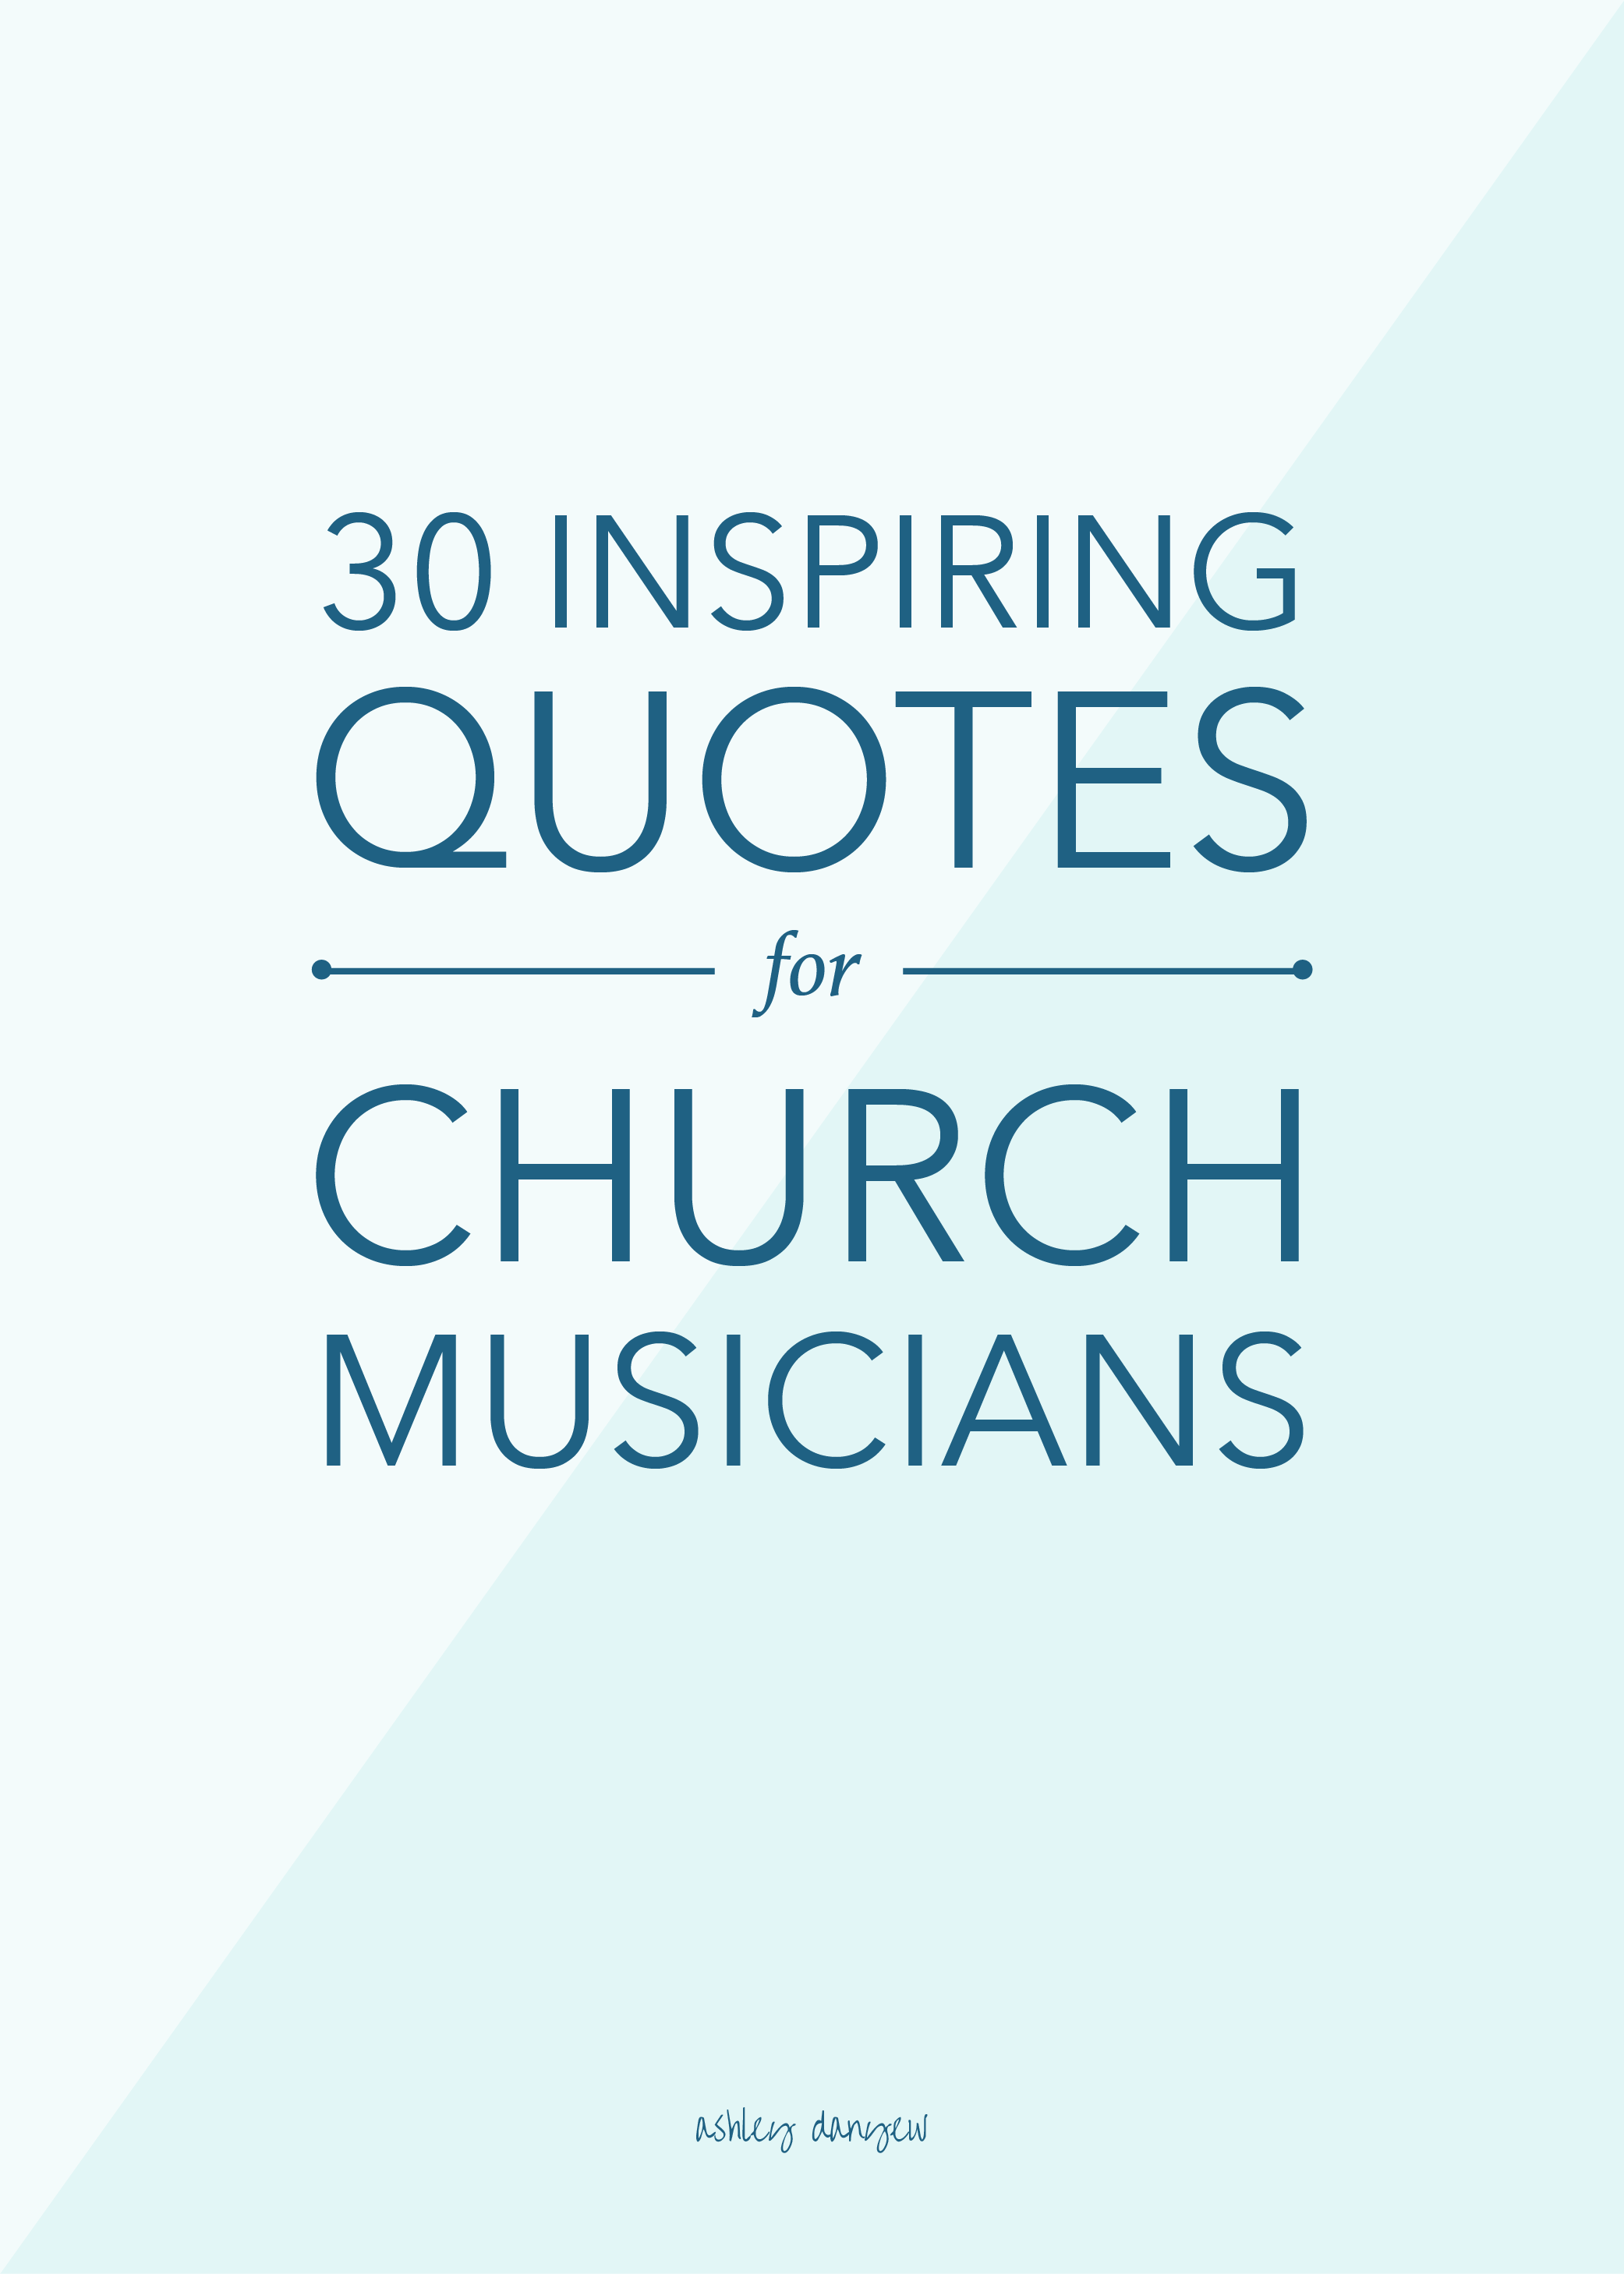 30 Inspiring Quotes for Church Musicians | Ashley Danyew